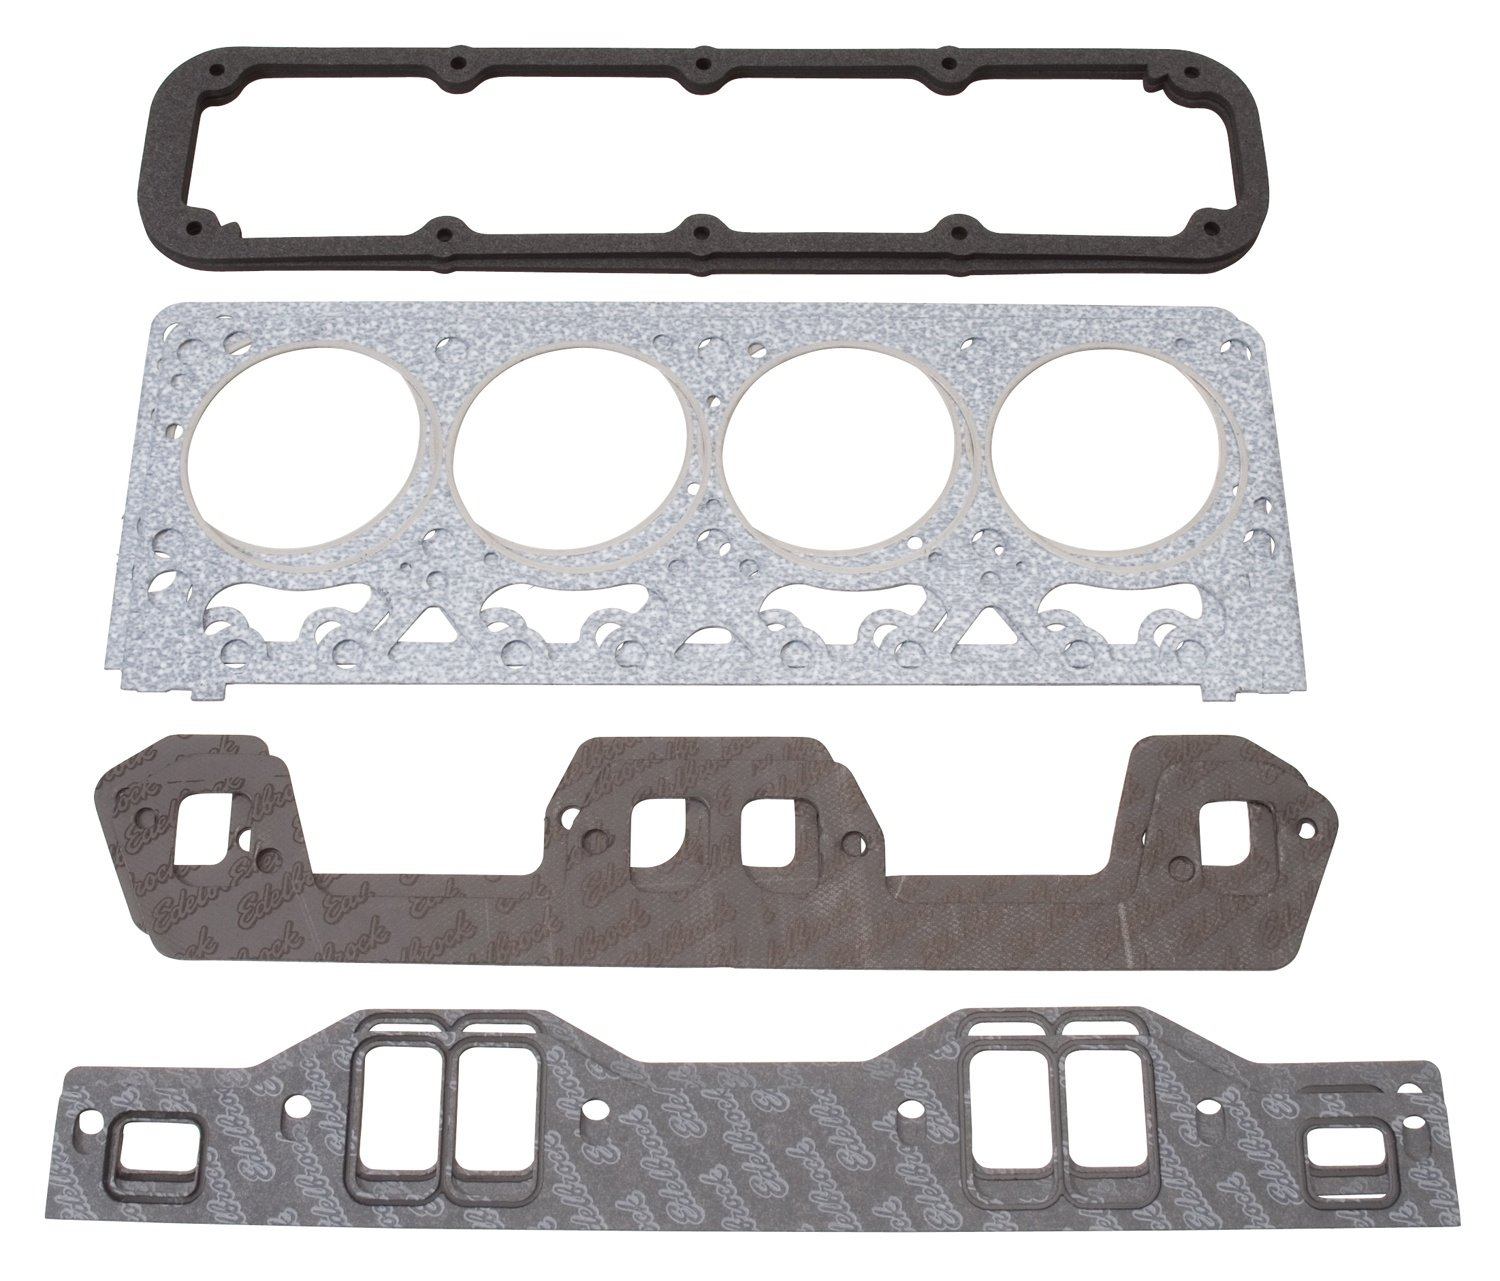 Edelbrock 7371 Cylinder Head Gasket Set Incl. Intake/Exhaust/Head/Waterneck/Distributor/Valve Cover Gaskets Cylinder Head Gasket Set